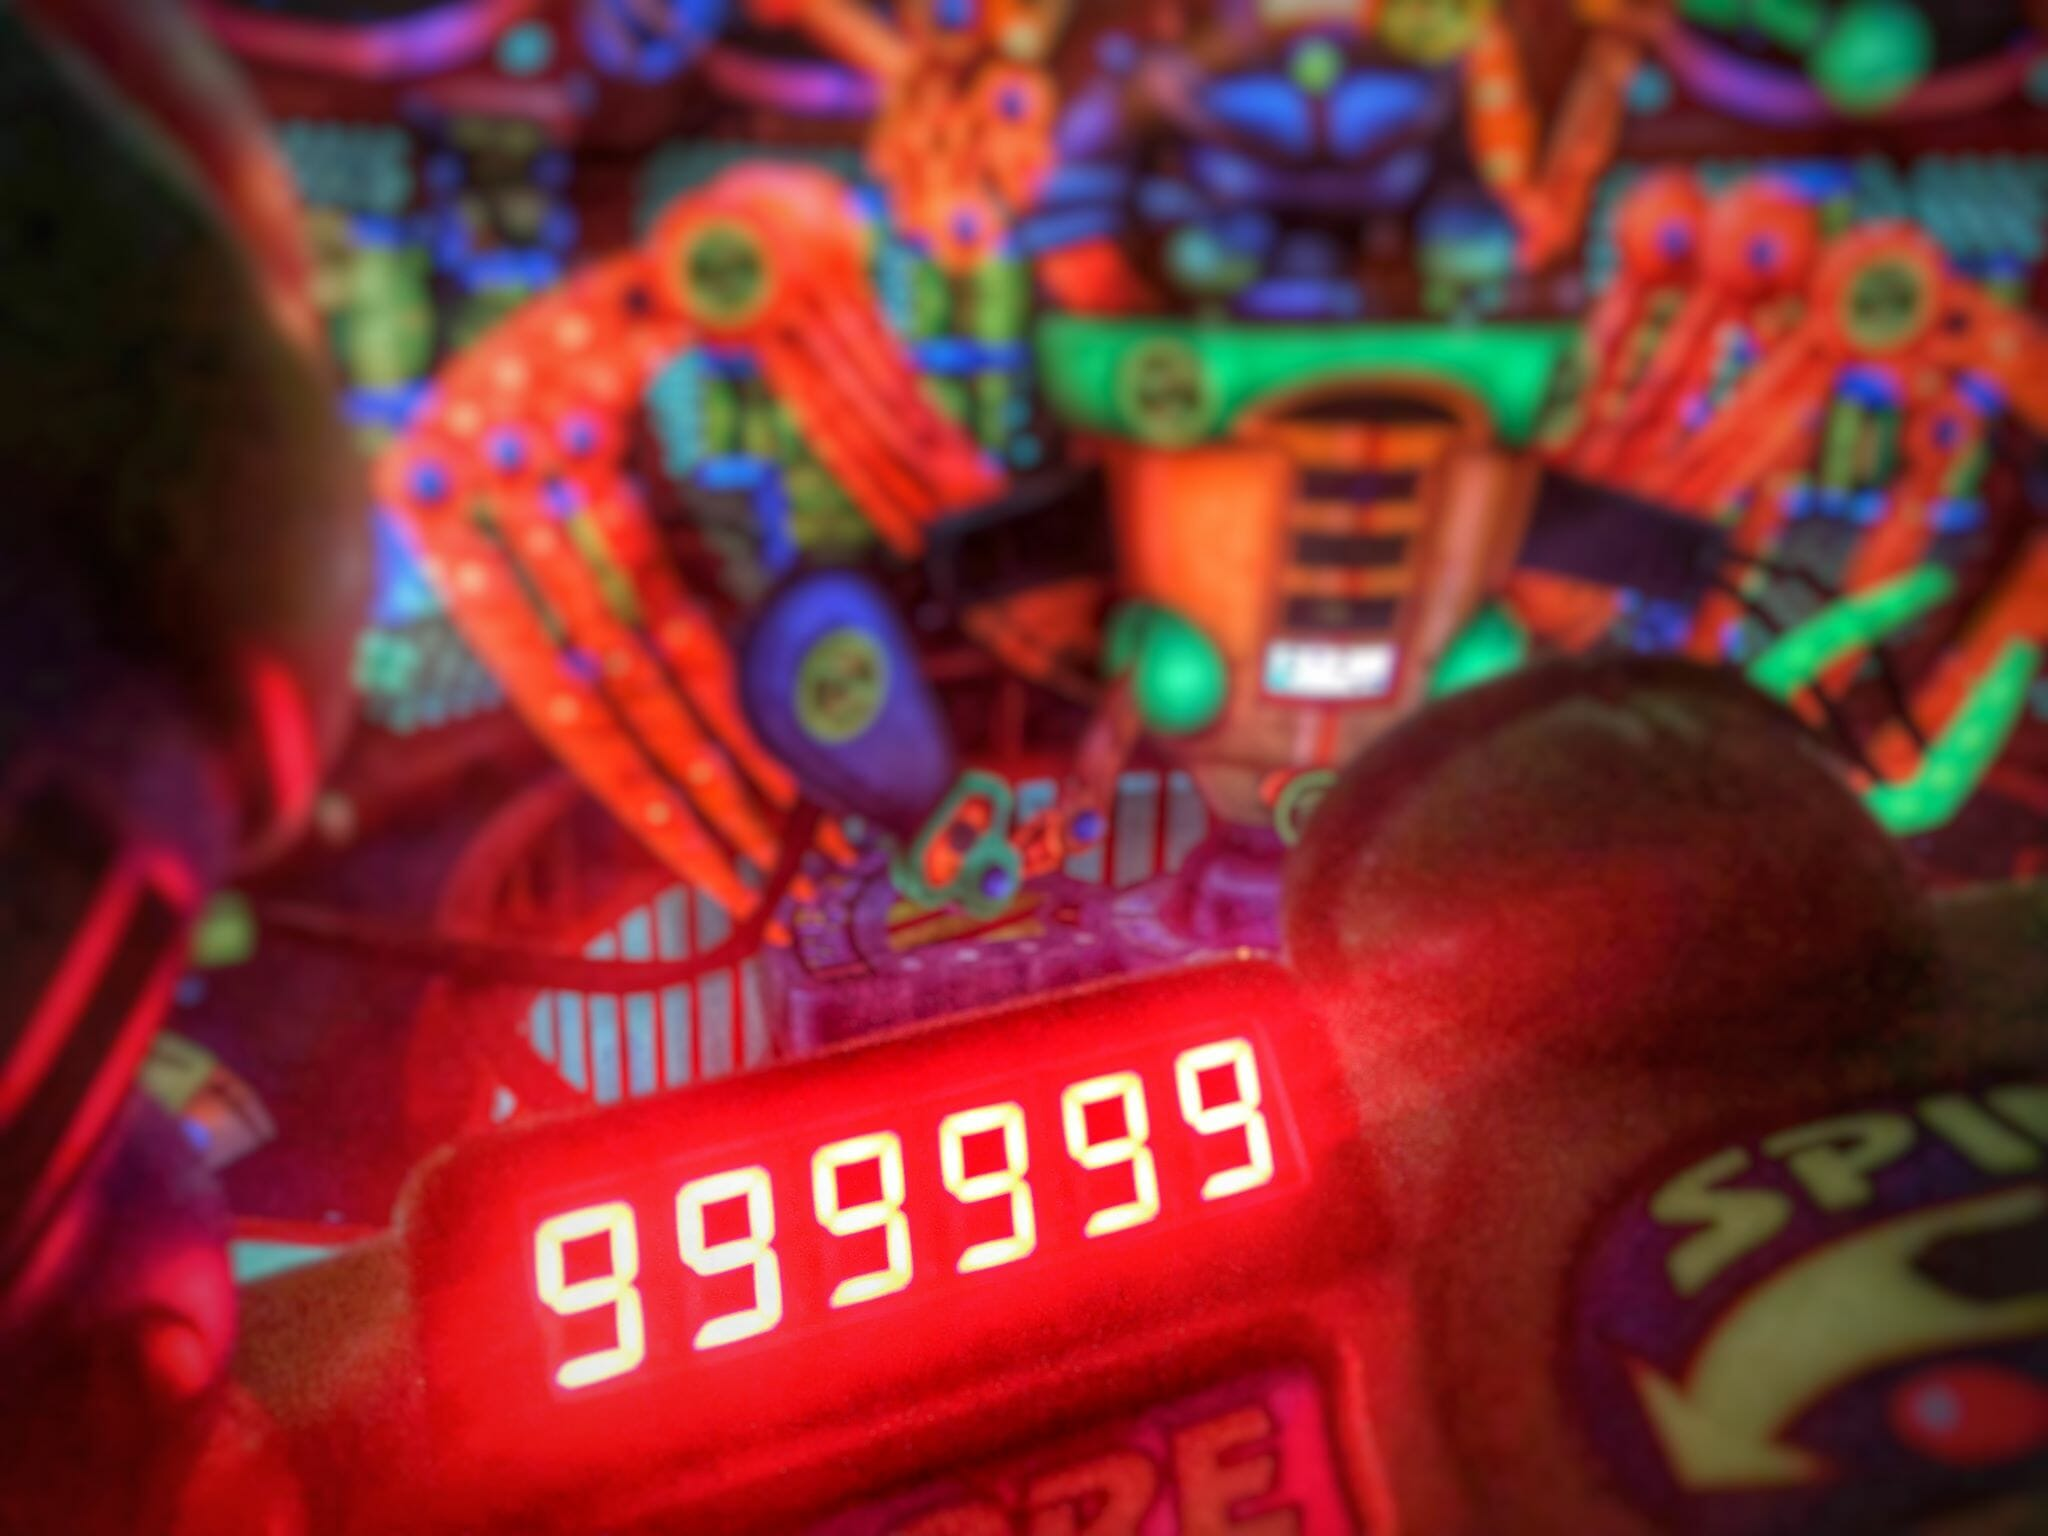 How to Get a Top Score in Buzz Lightyear's Space Ranger Spin